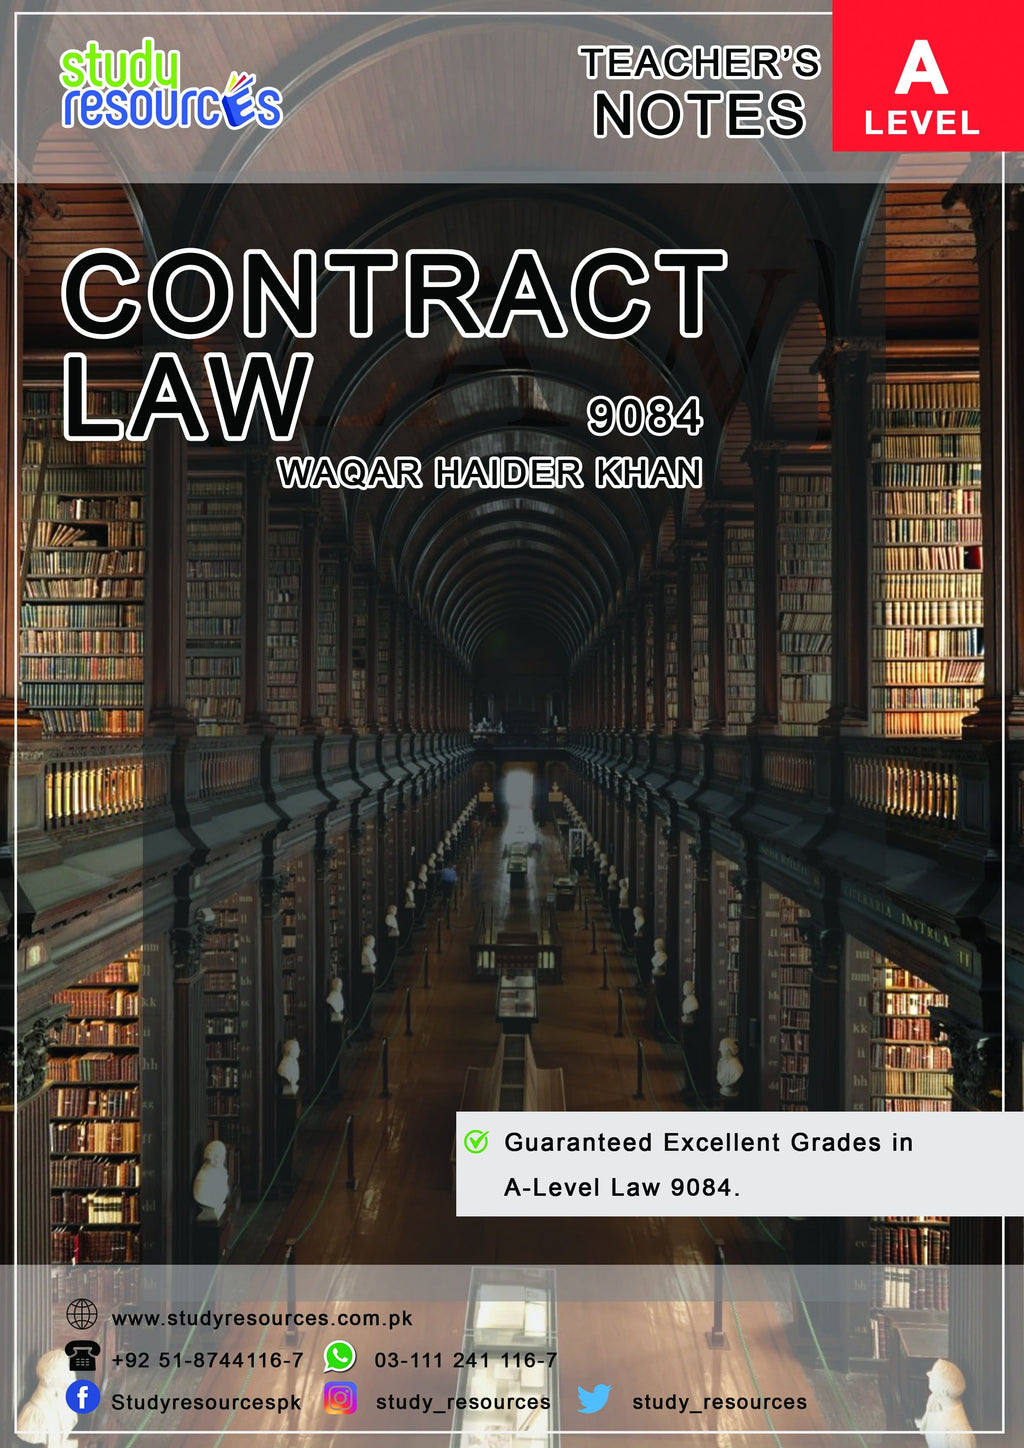 Cambridge A-Level (9084) Contract Law Recommended by Sir Waqar Haider Khan